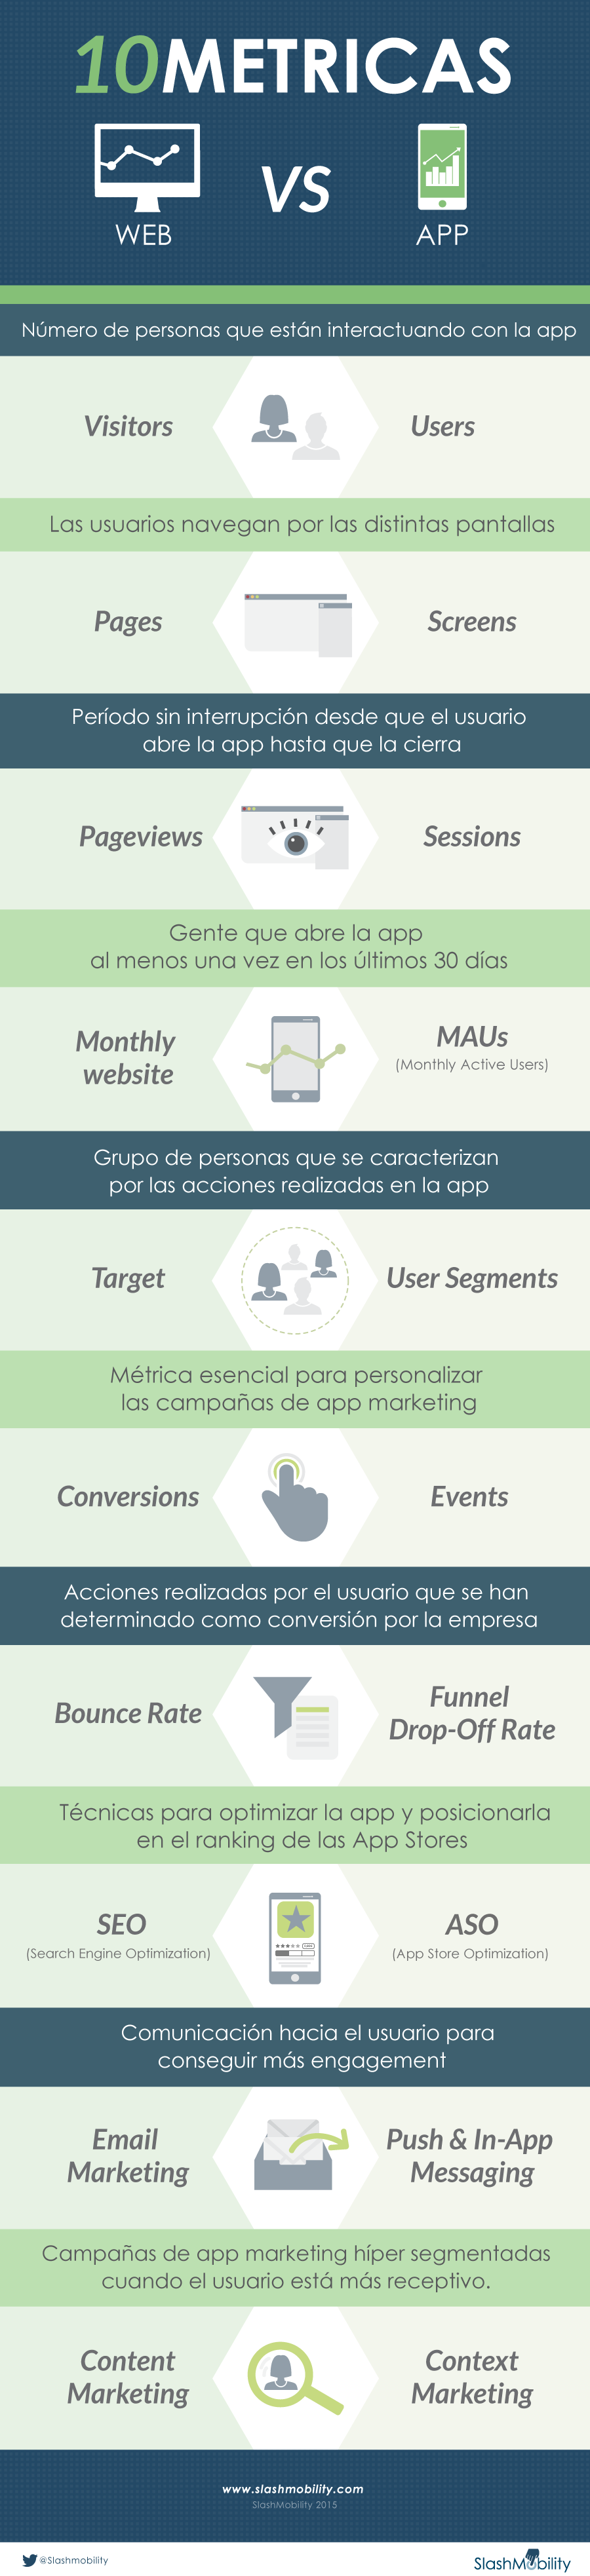 métricas web vs mobile